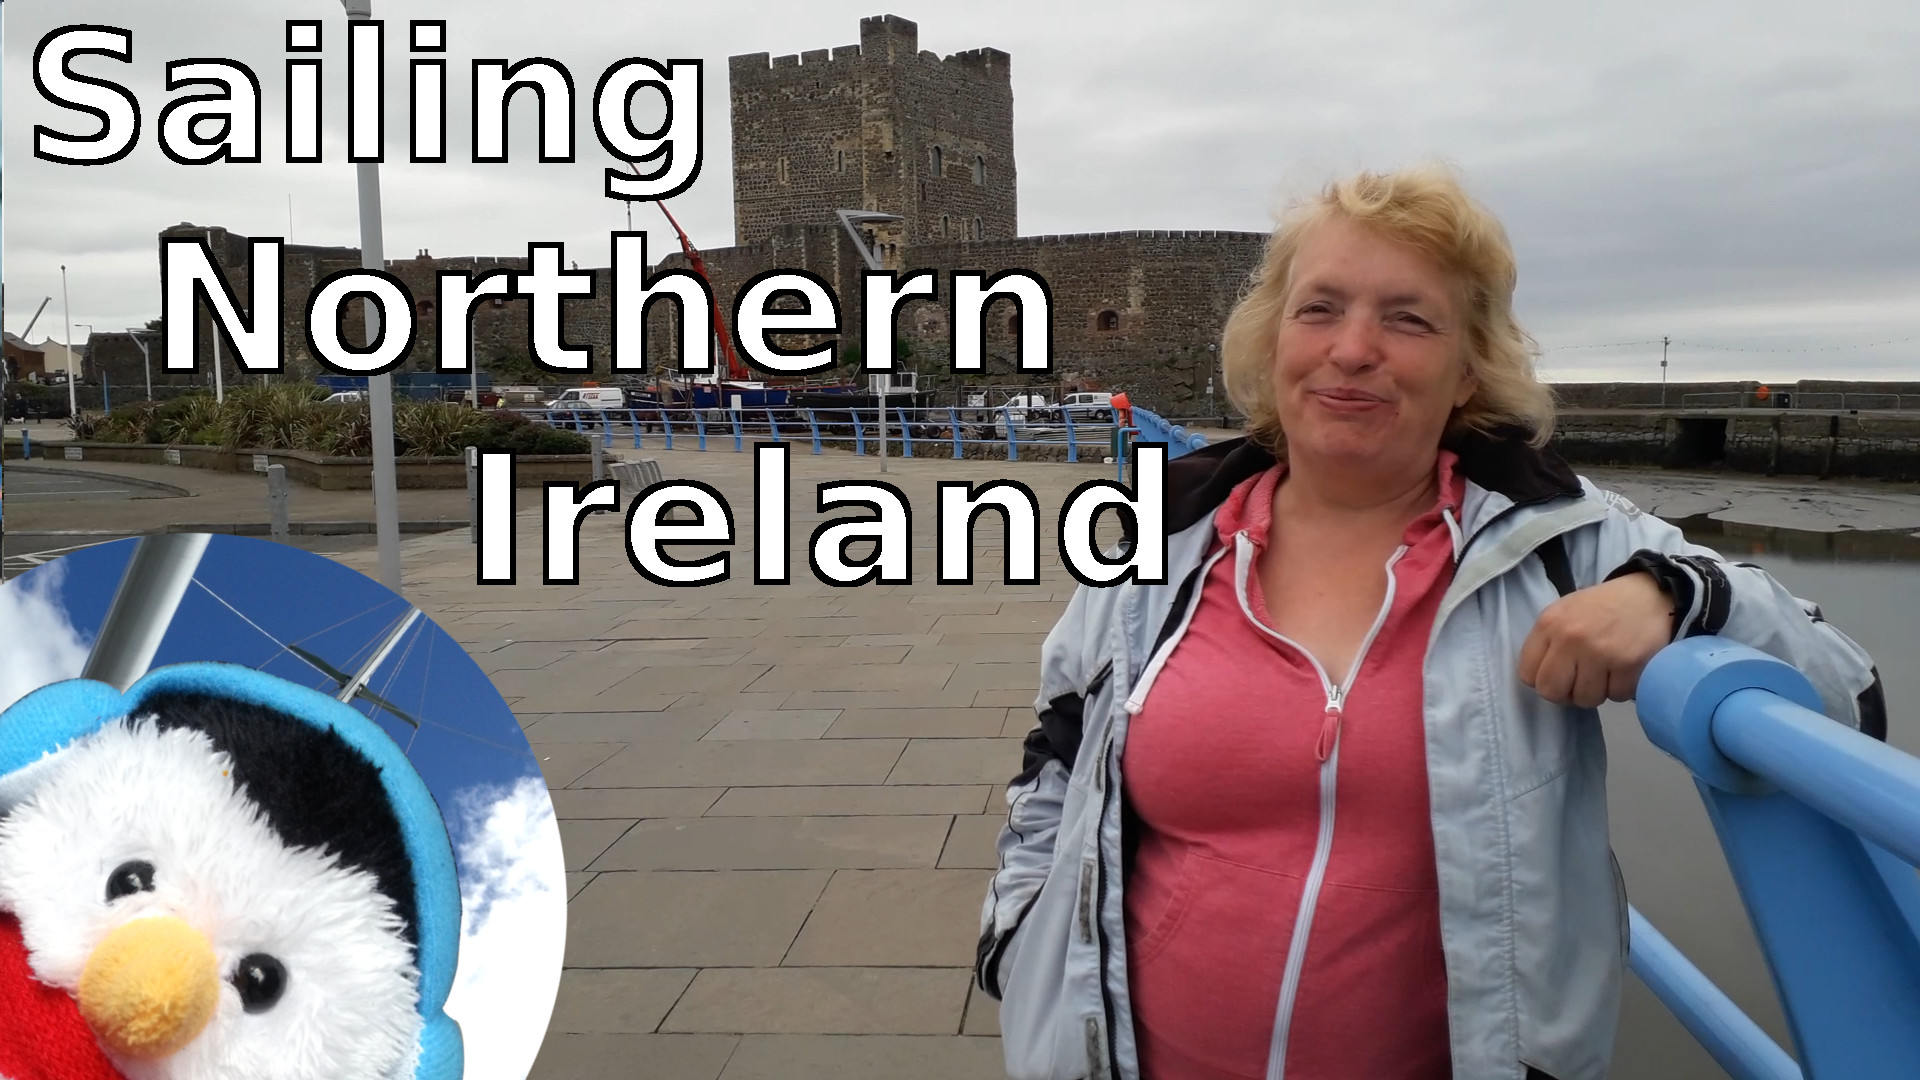 Watch our 'Sailing Northern Ireland' video and add comments etc.